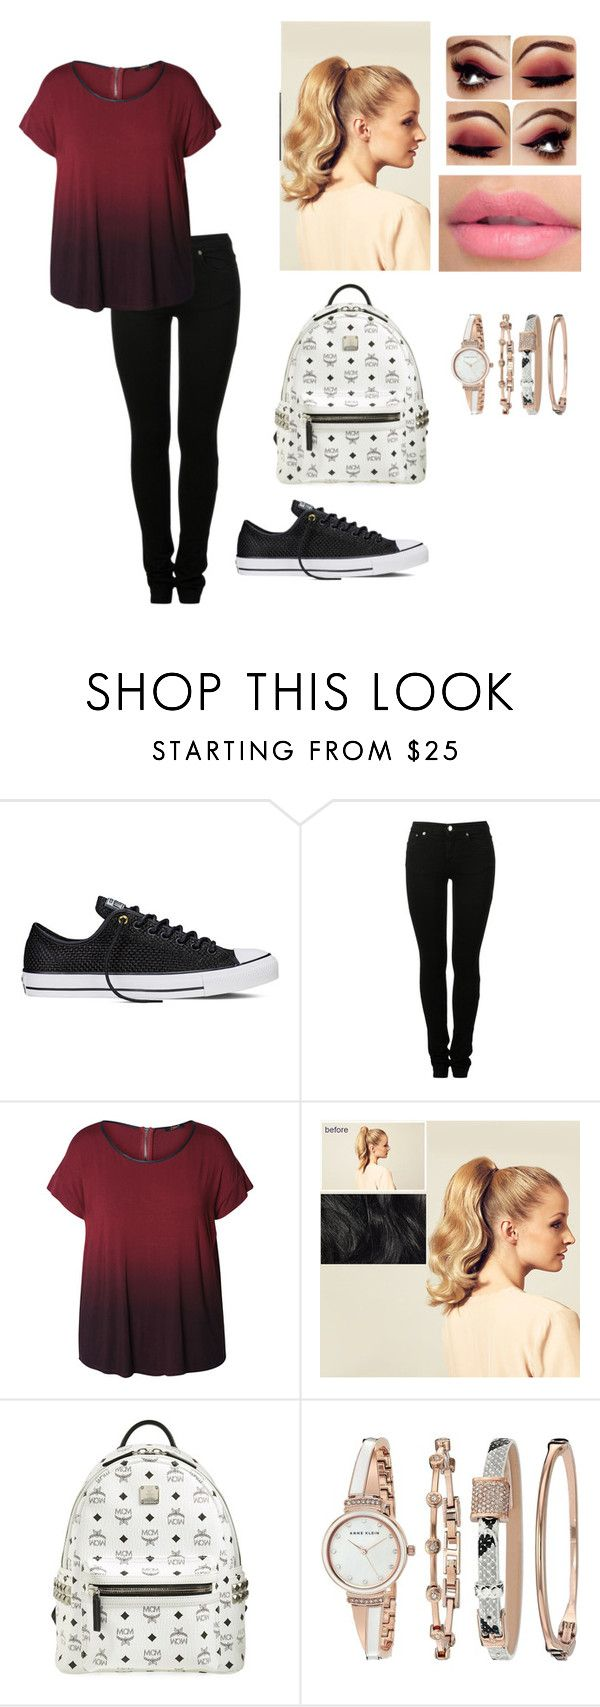 """""""Ella's Outfit"""" by shecola on Polyvore featuring Converse, MM6 Maison Margiela, Dex, Hershesons, MCM, Anne Klein and plus size clothing"""